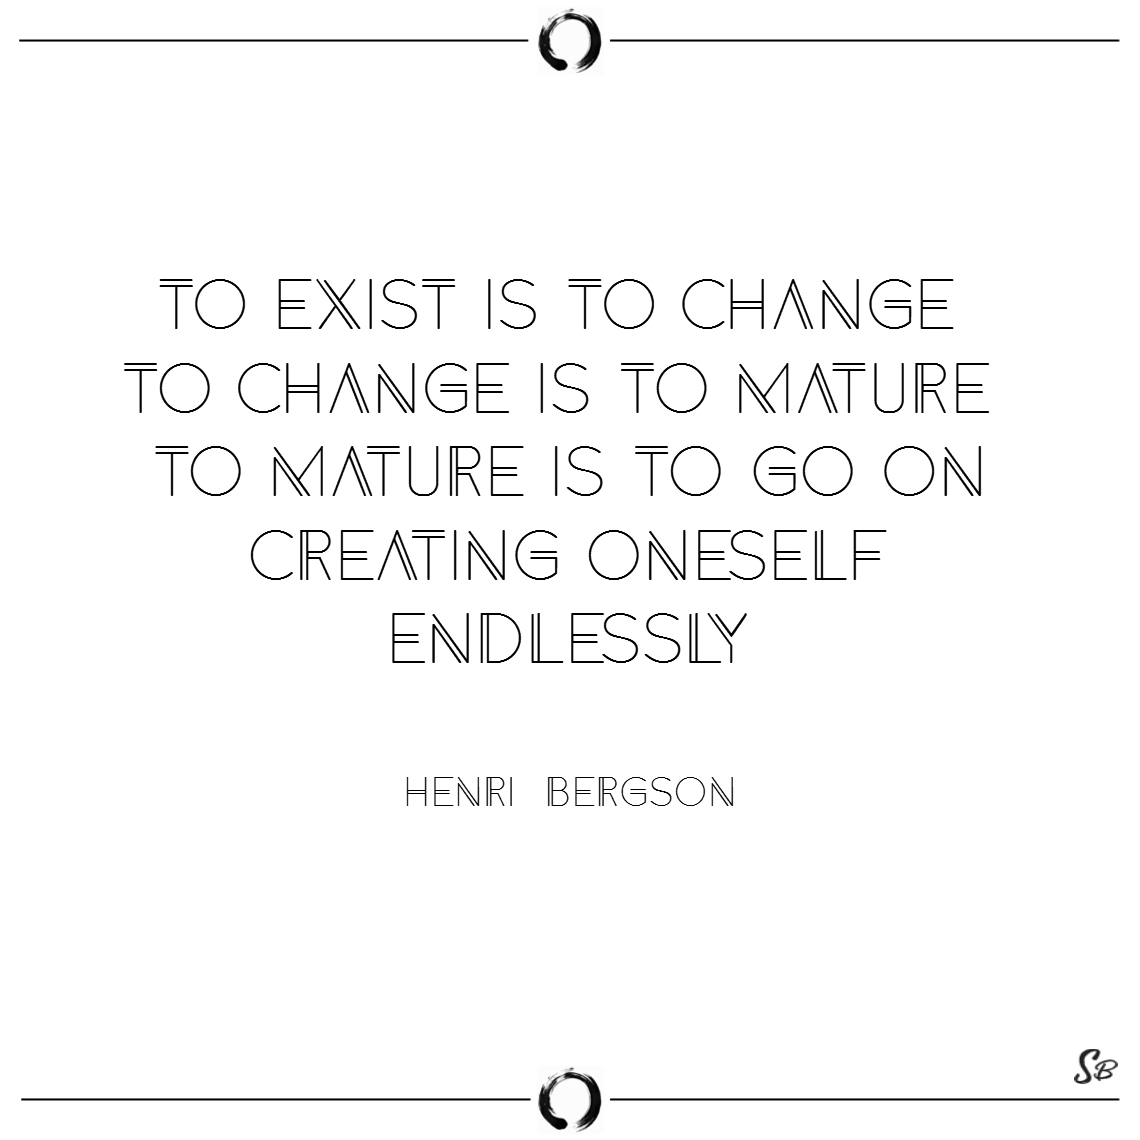 To exist is to change, to change is to mature, to mature is to go on creating oneself endlessly. – henri bergson